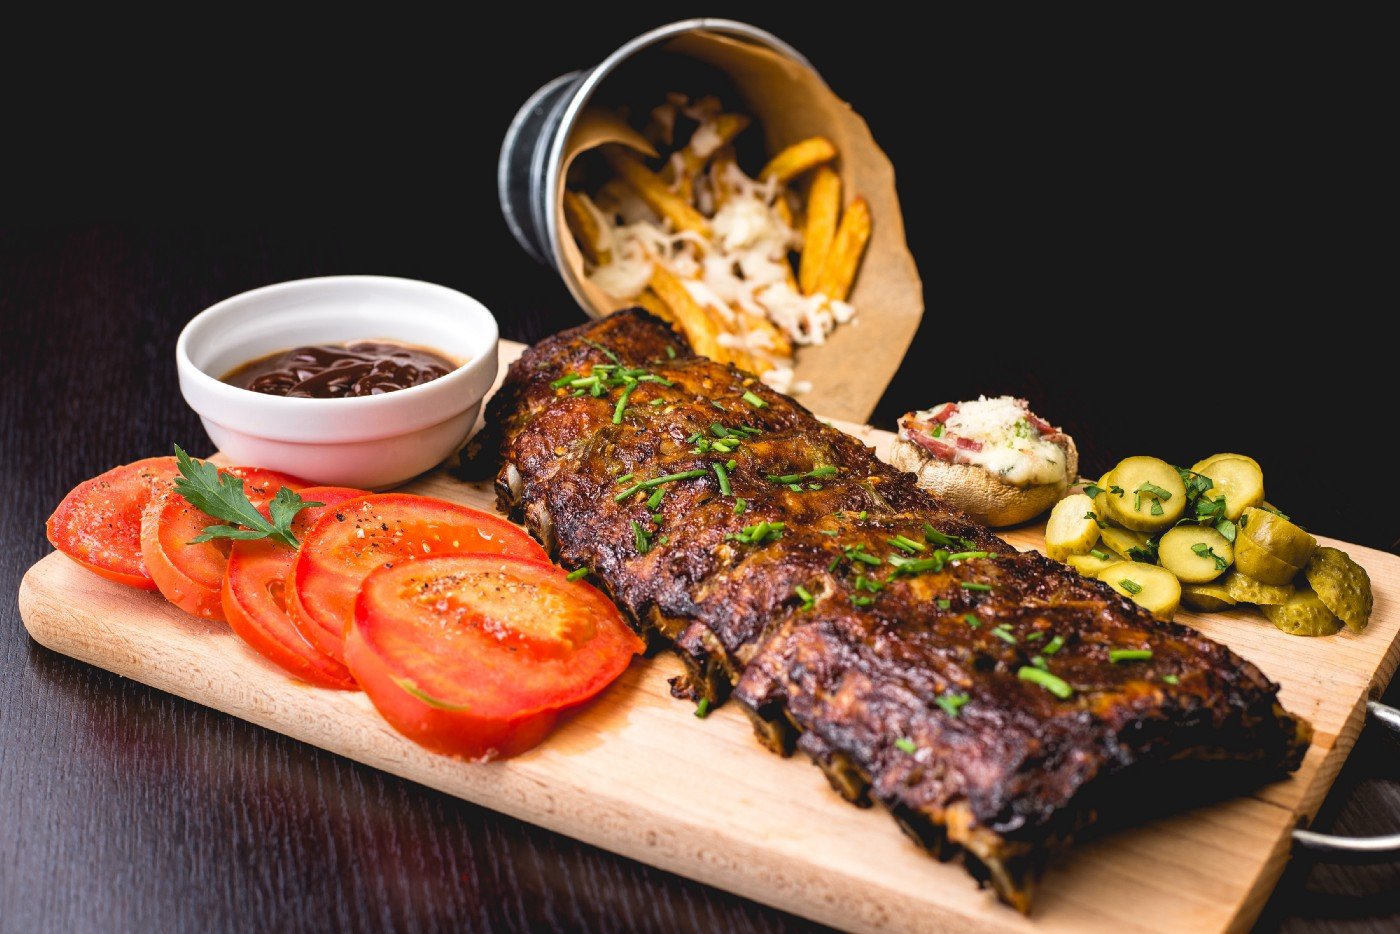 Beef ribs with piles of chopped tomato, gravy and fries in a bucket.